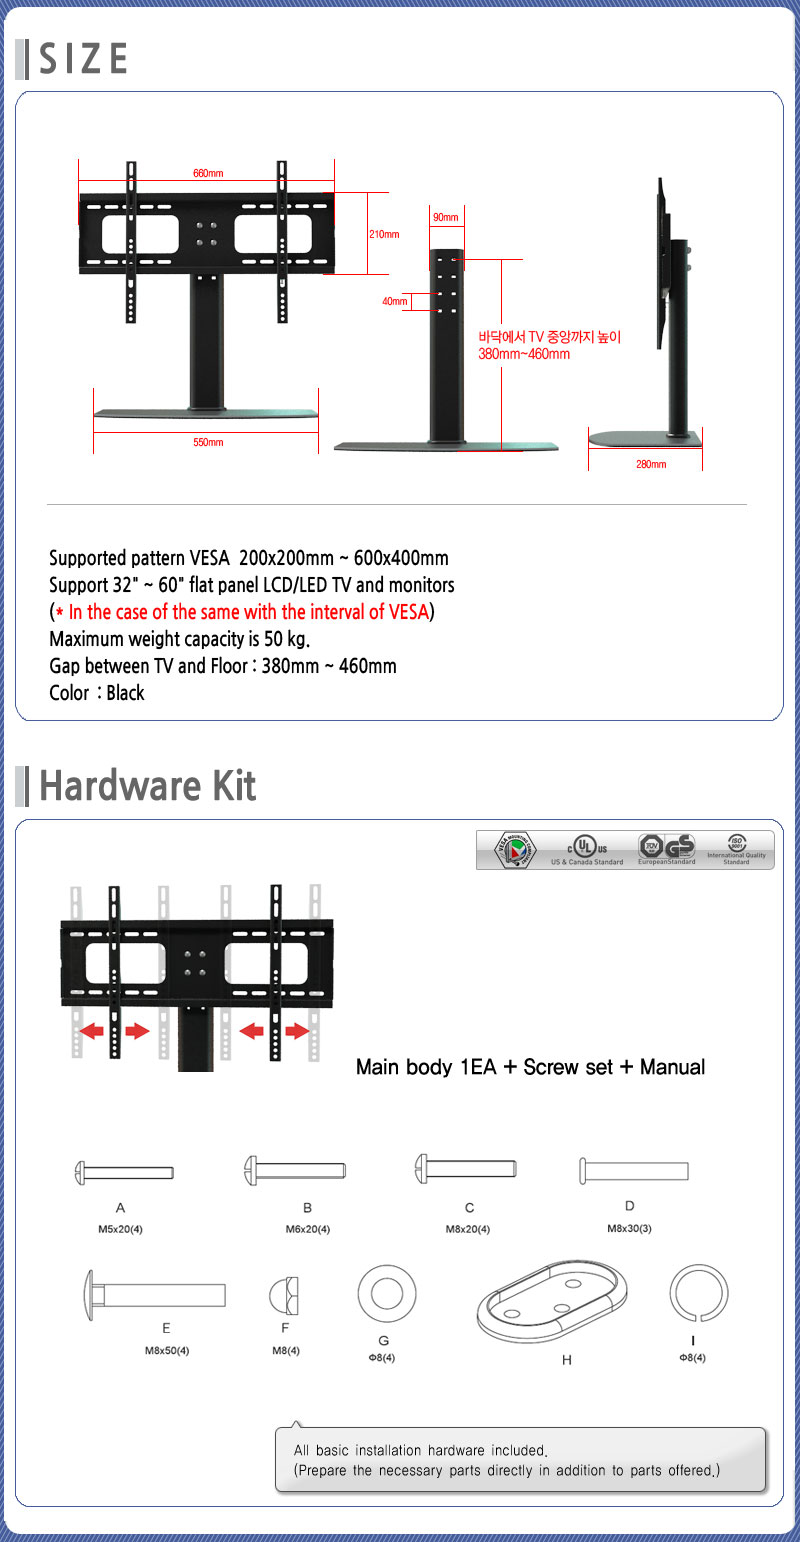 TV base stand AVRTV05 hardware kit